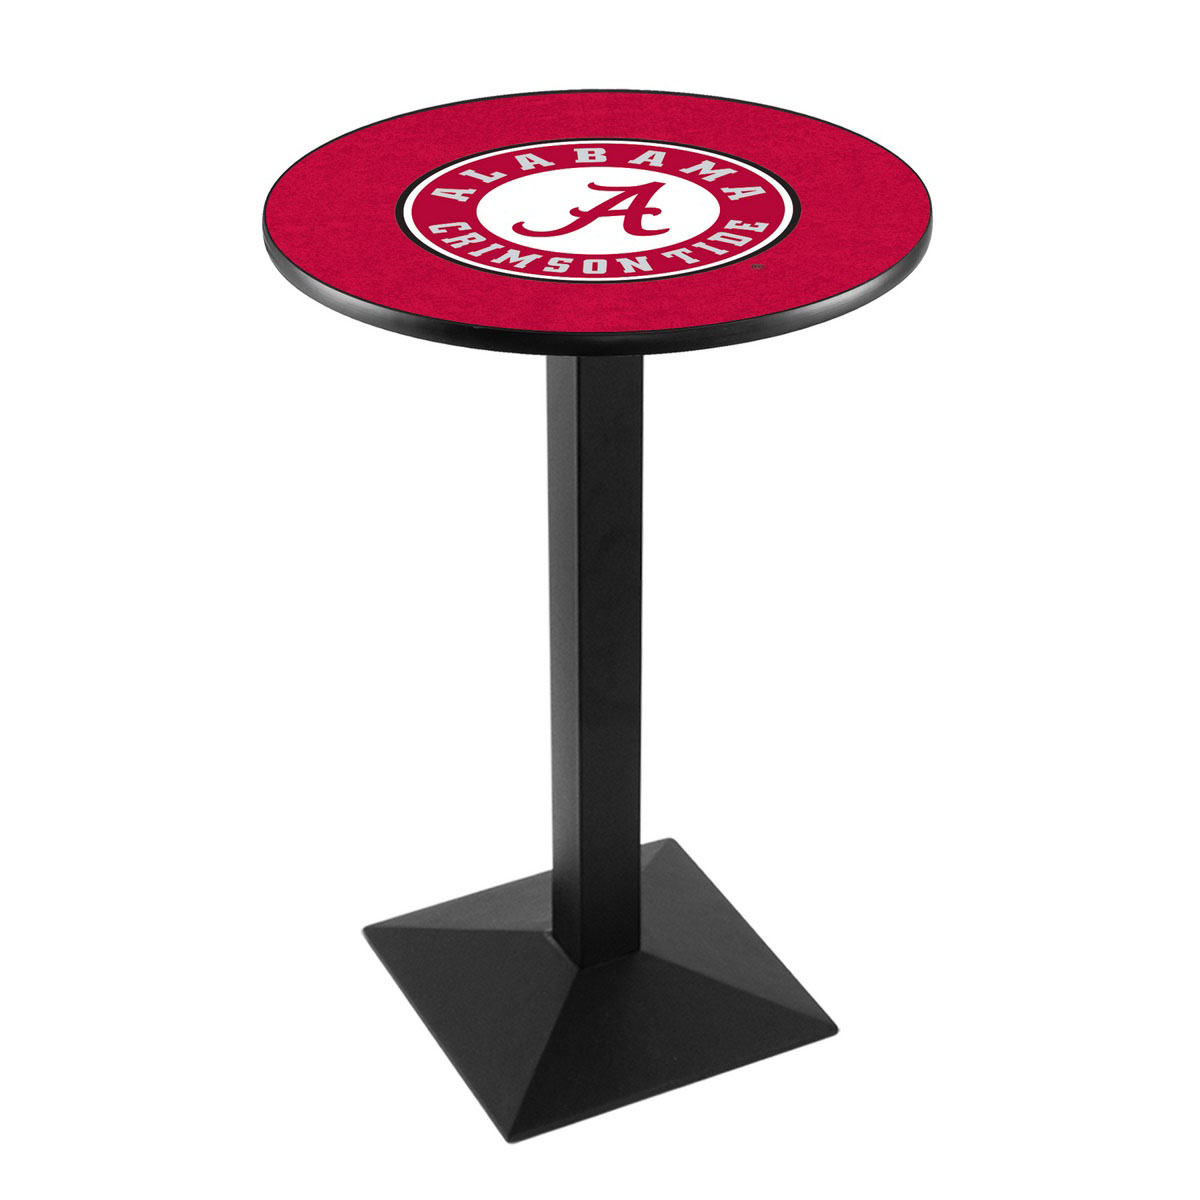 Trustworthy University Alabama Script A Logo Pub Bar Table Square Stand Product Photo